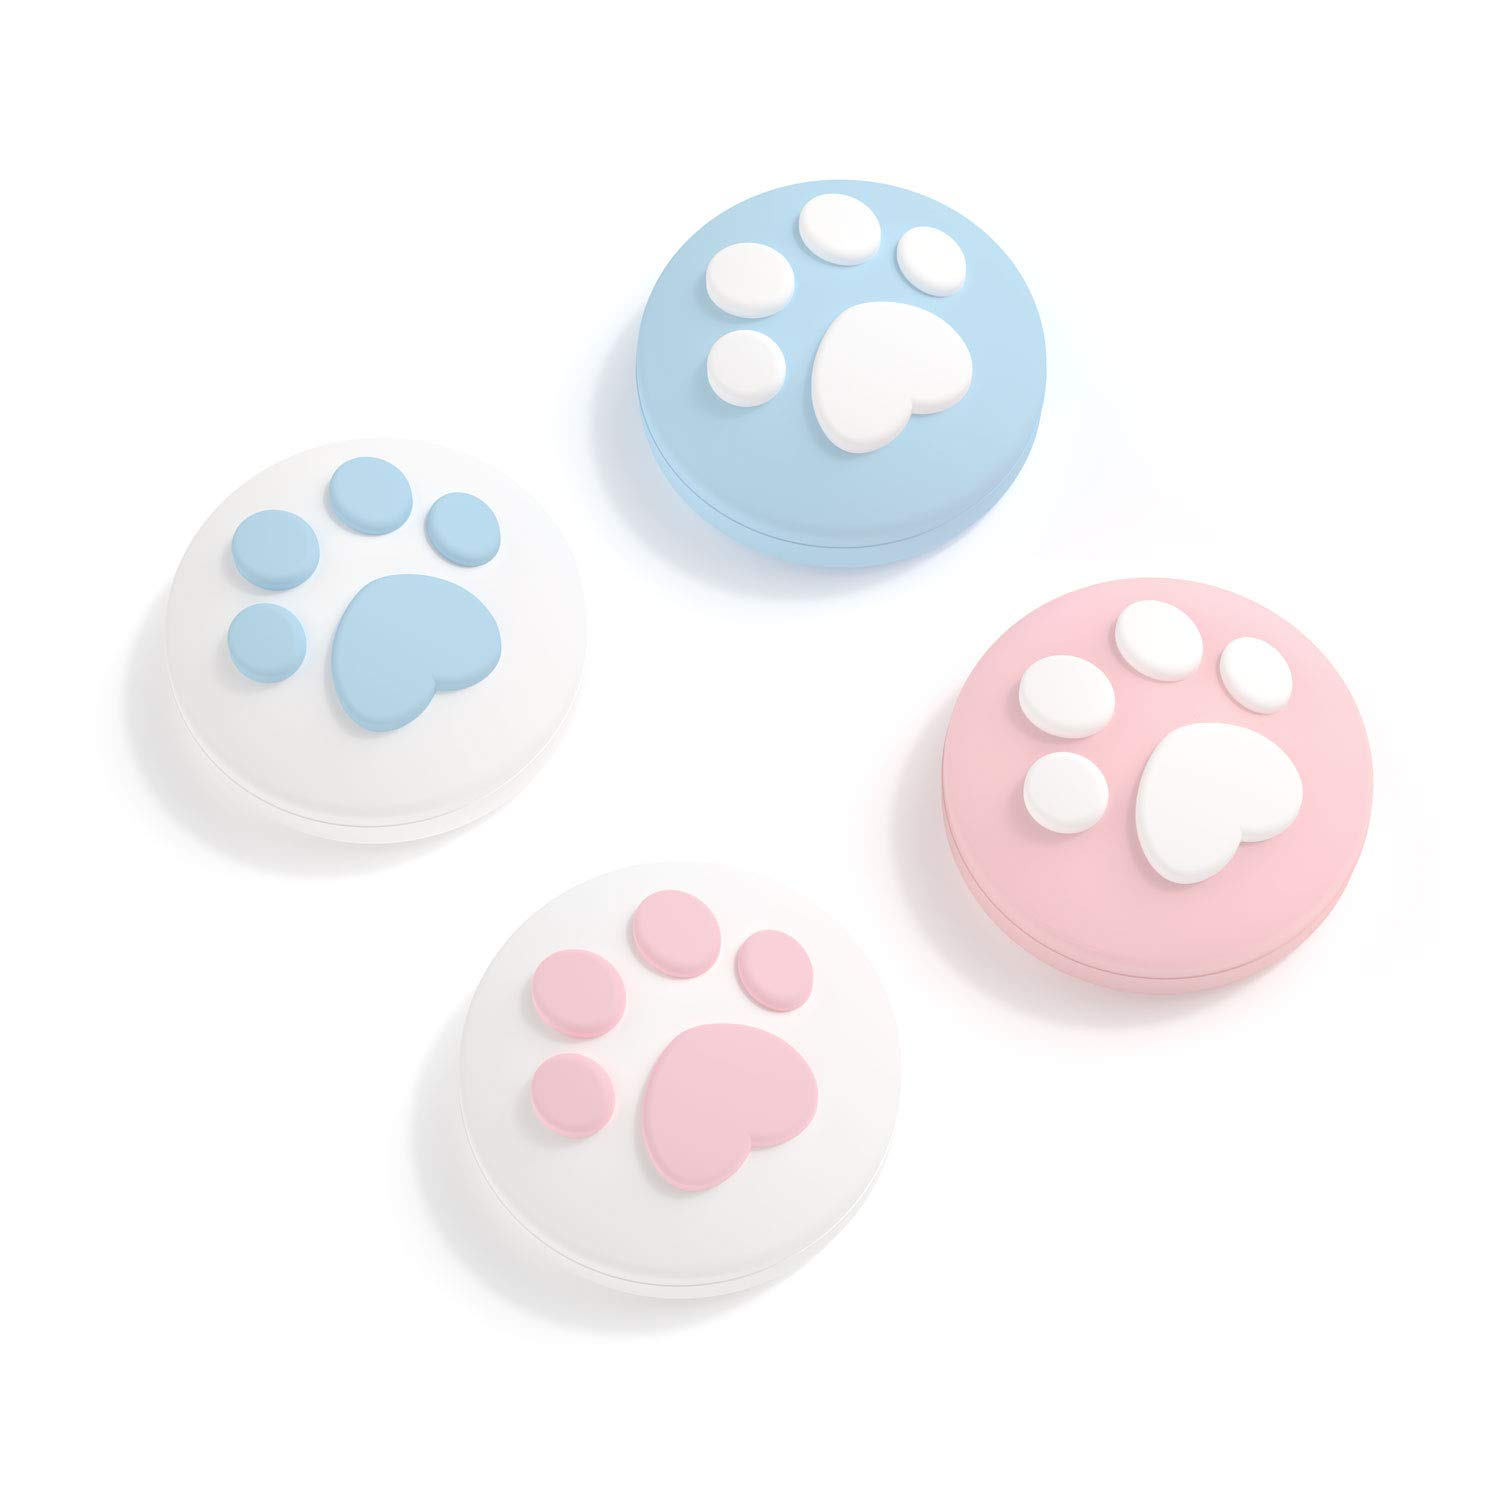 GeekShare 4PCS Silicone Cat Paw Joy Con Thumb Grip Set Joystick Caps for Switch and Switch Lite Thumb Stick Grips (Pink & Blue)